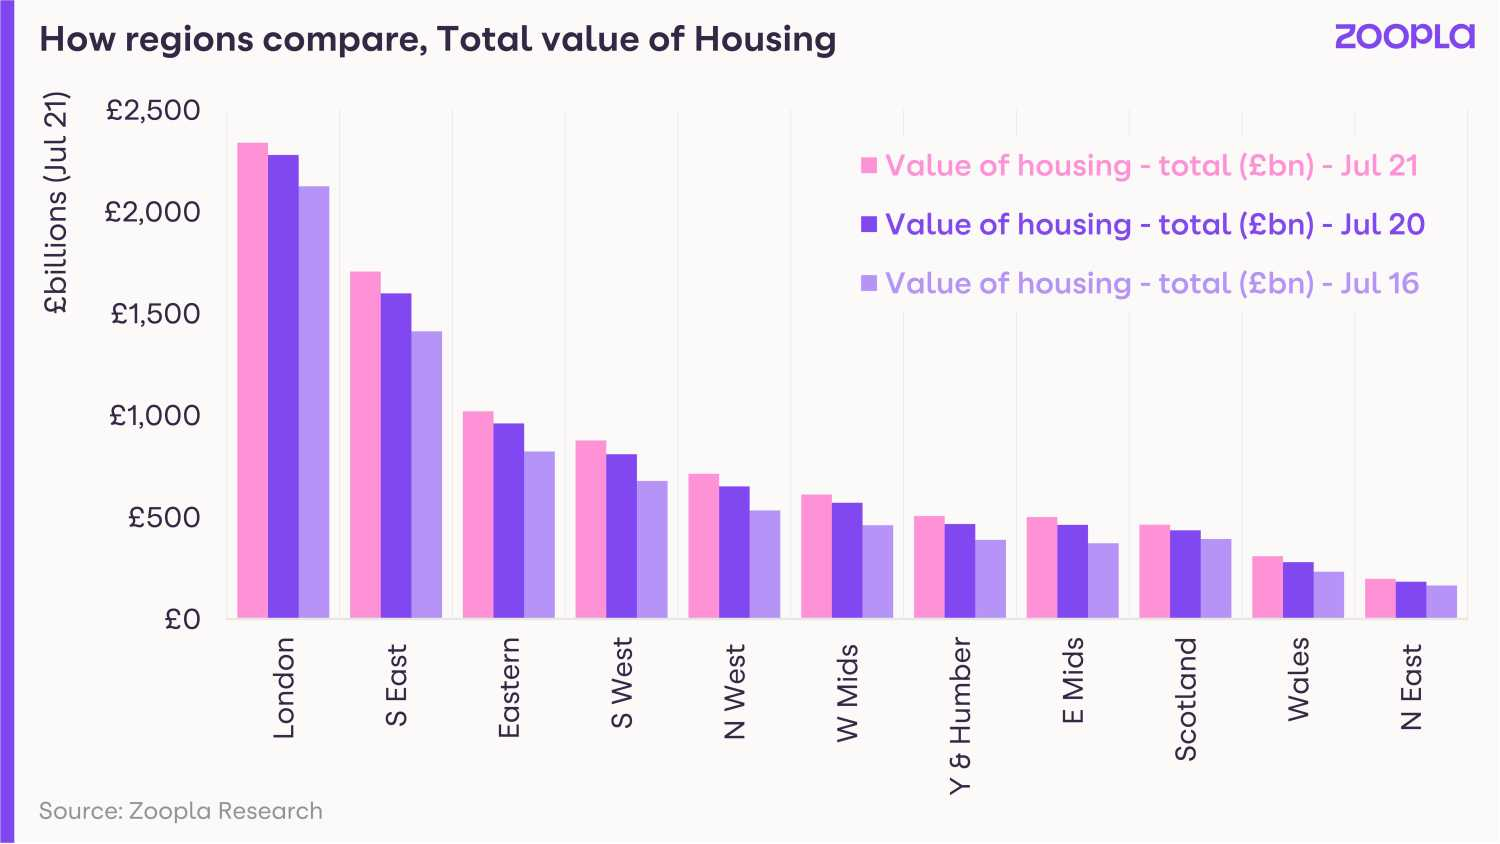 Image shows how the value of housing compares across the regions.